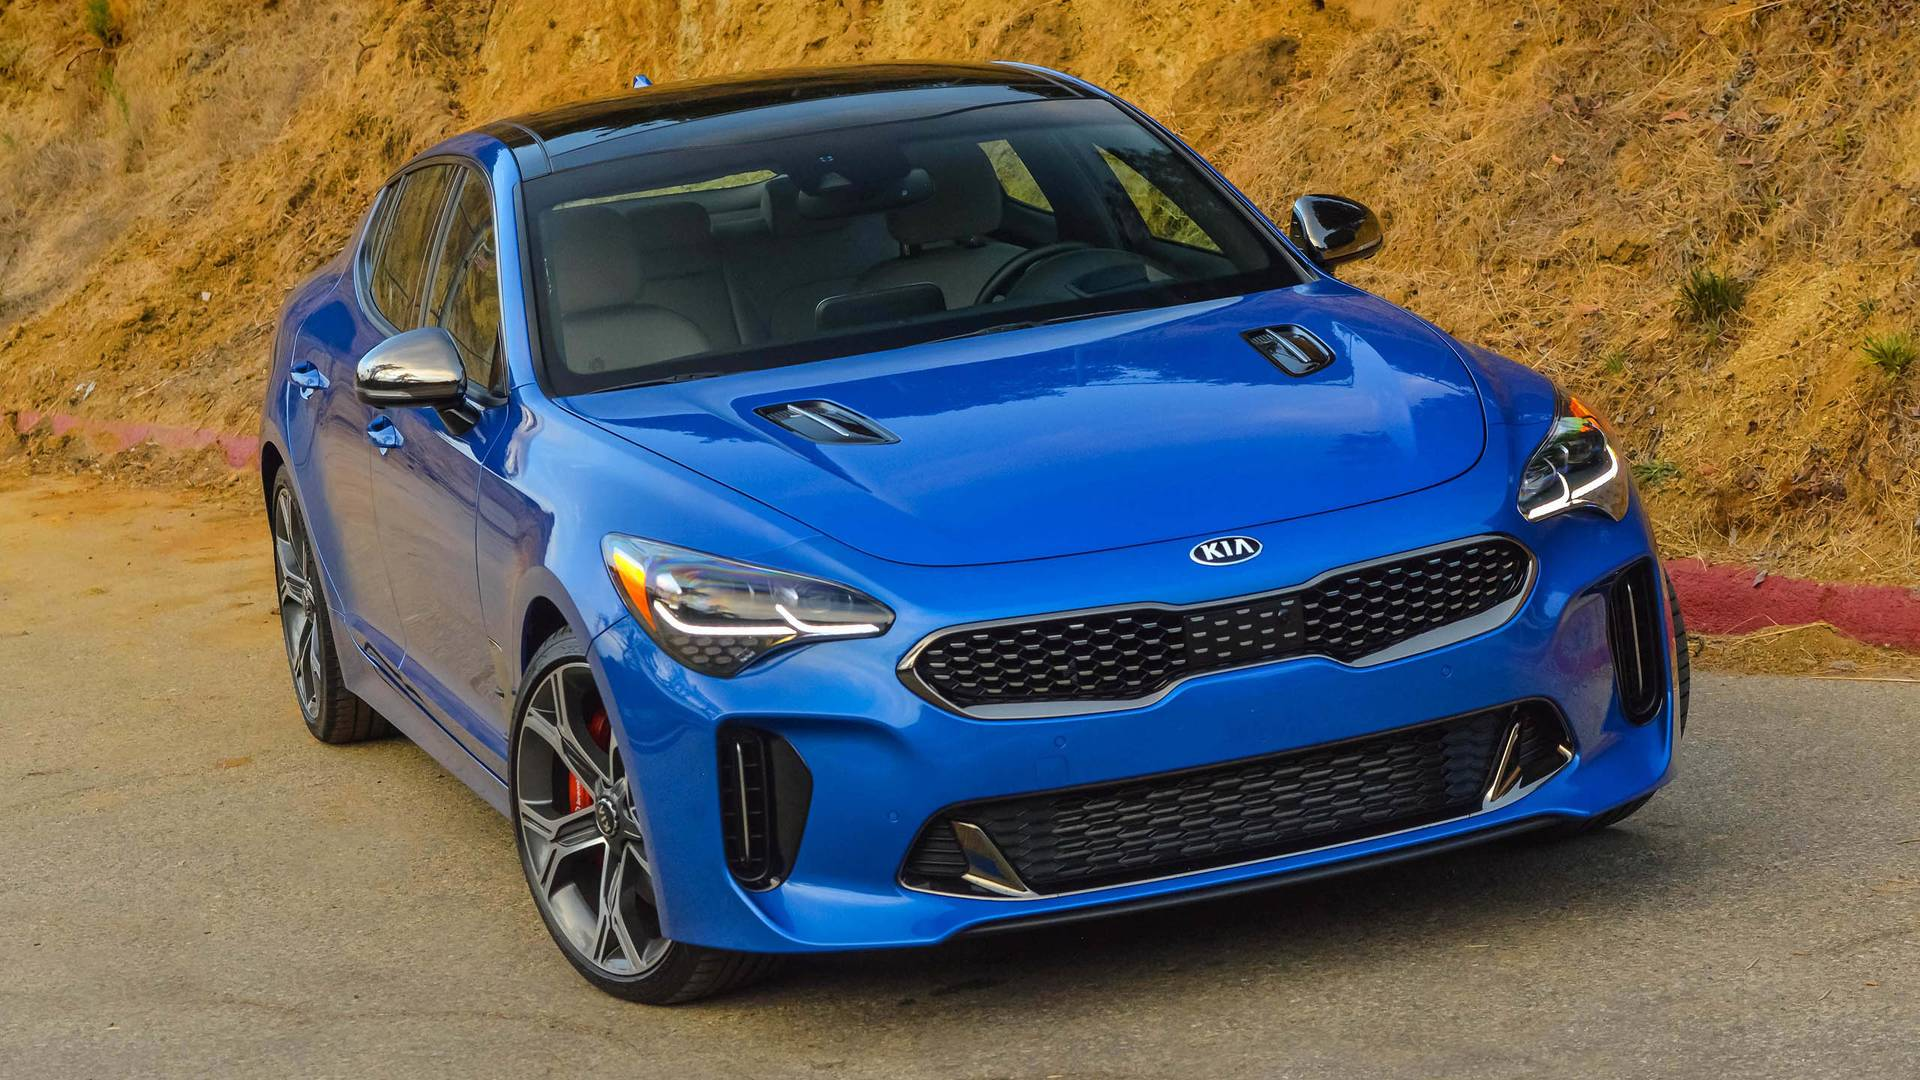 Kia Says Tiger Nose Design Is The Equivalent Of BMW's Kidney